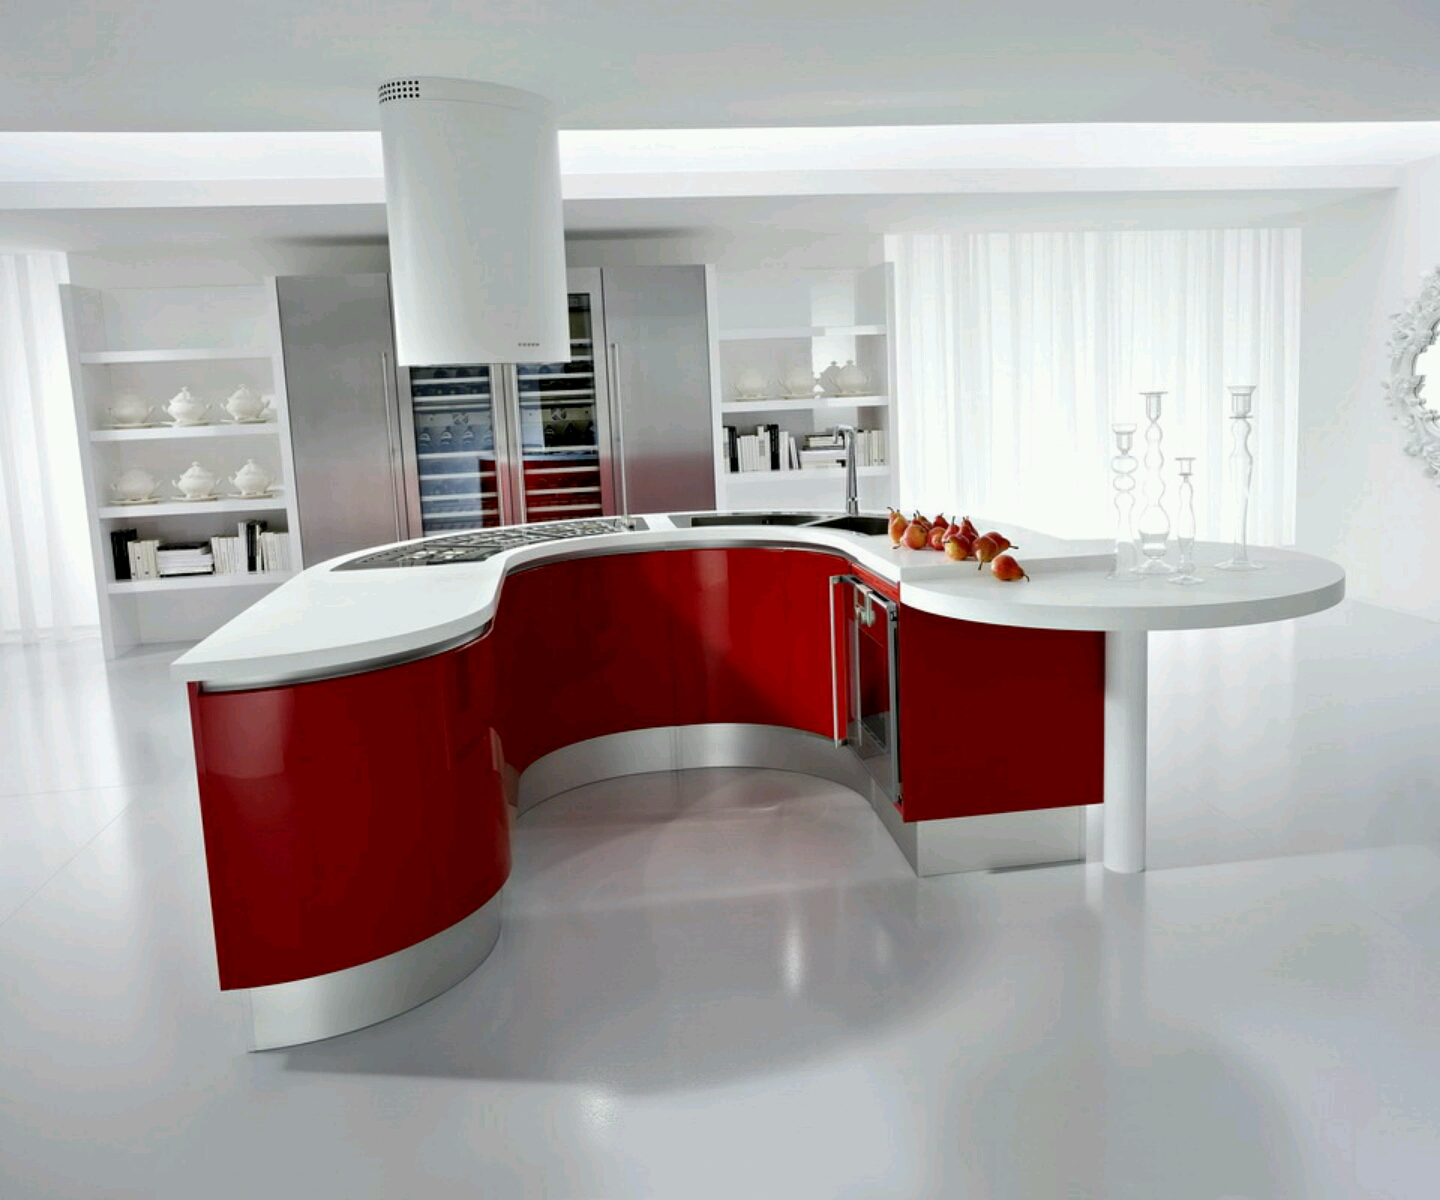 Modern kitchen cabinets designs ideas furniture gallery for New kitchen gallery